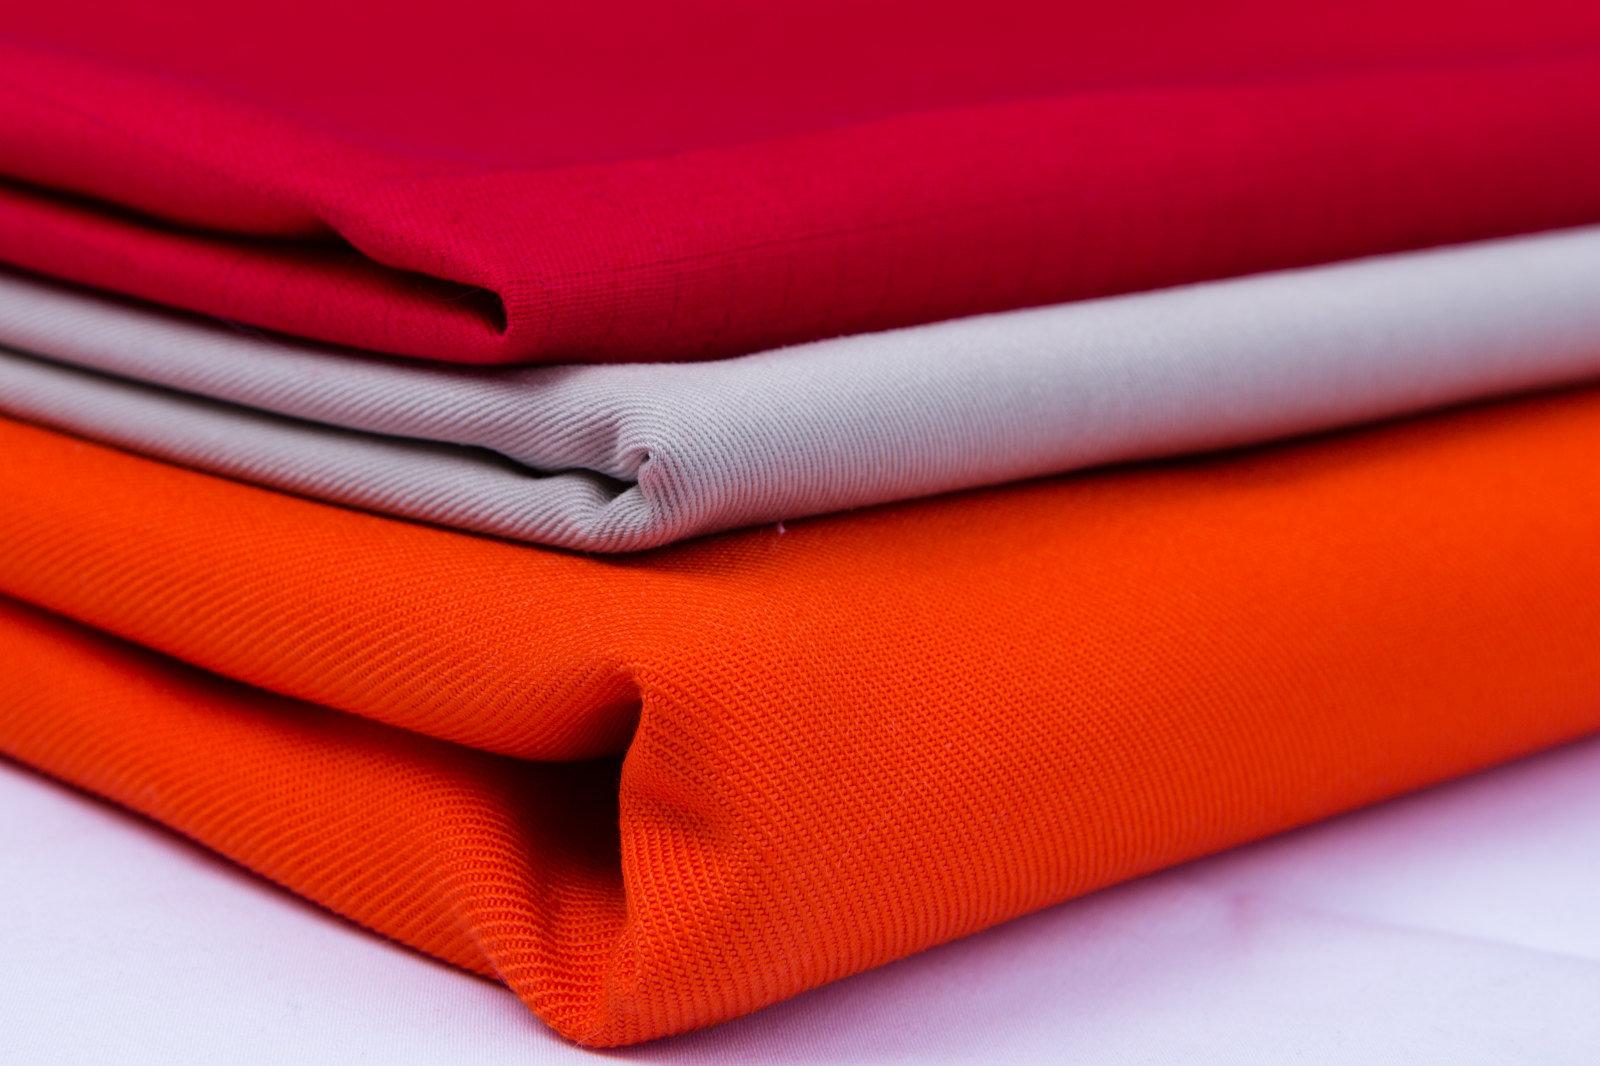 Dyed Fabric/Twill Uniform Fabric for Garment/School Uniform Fabric